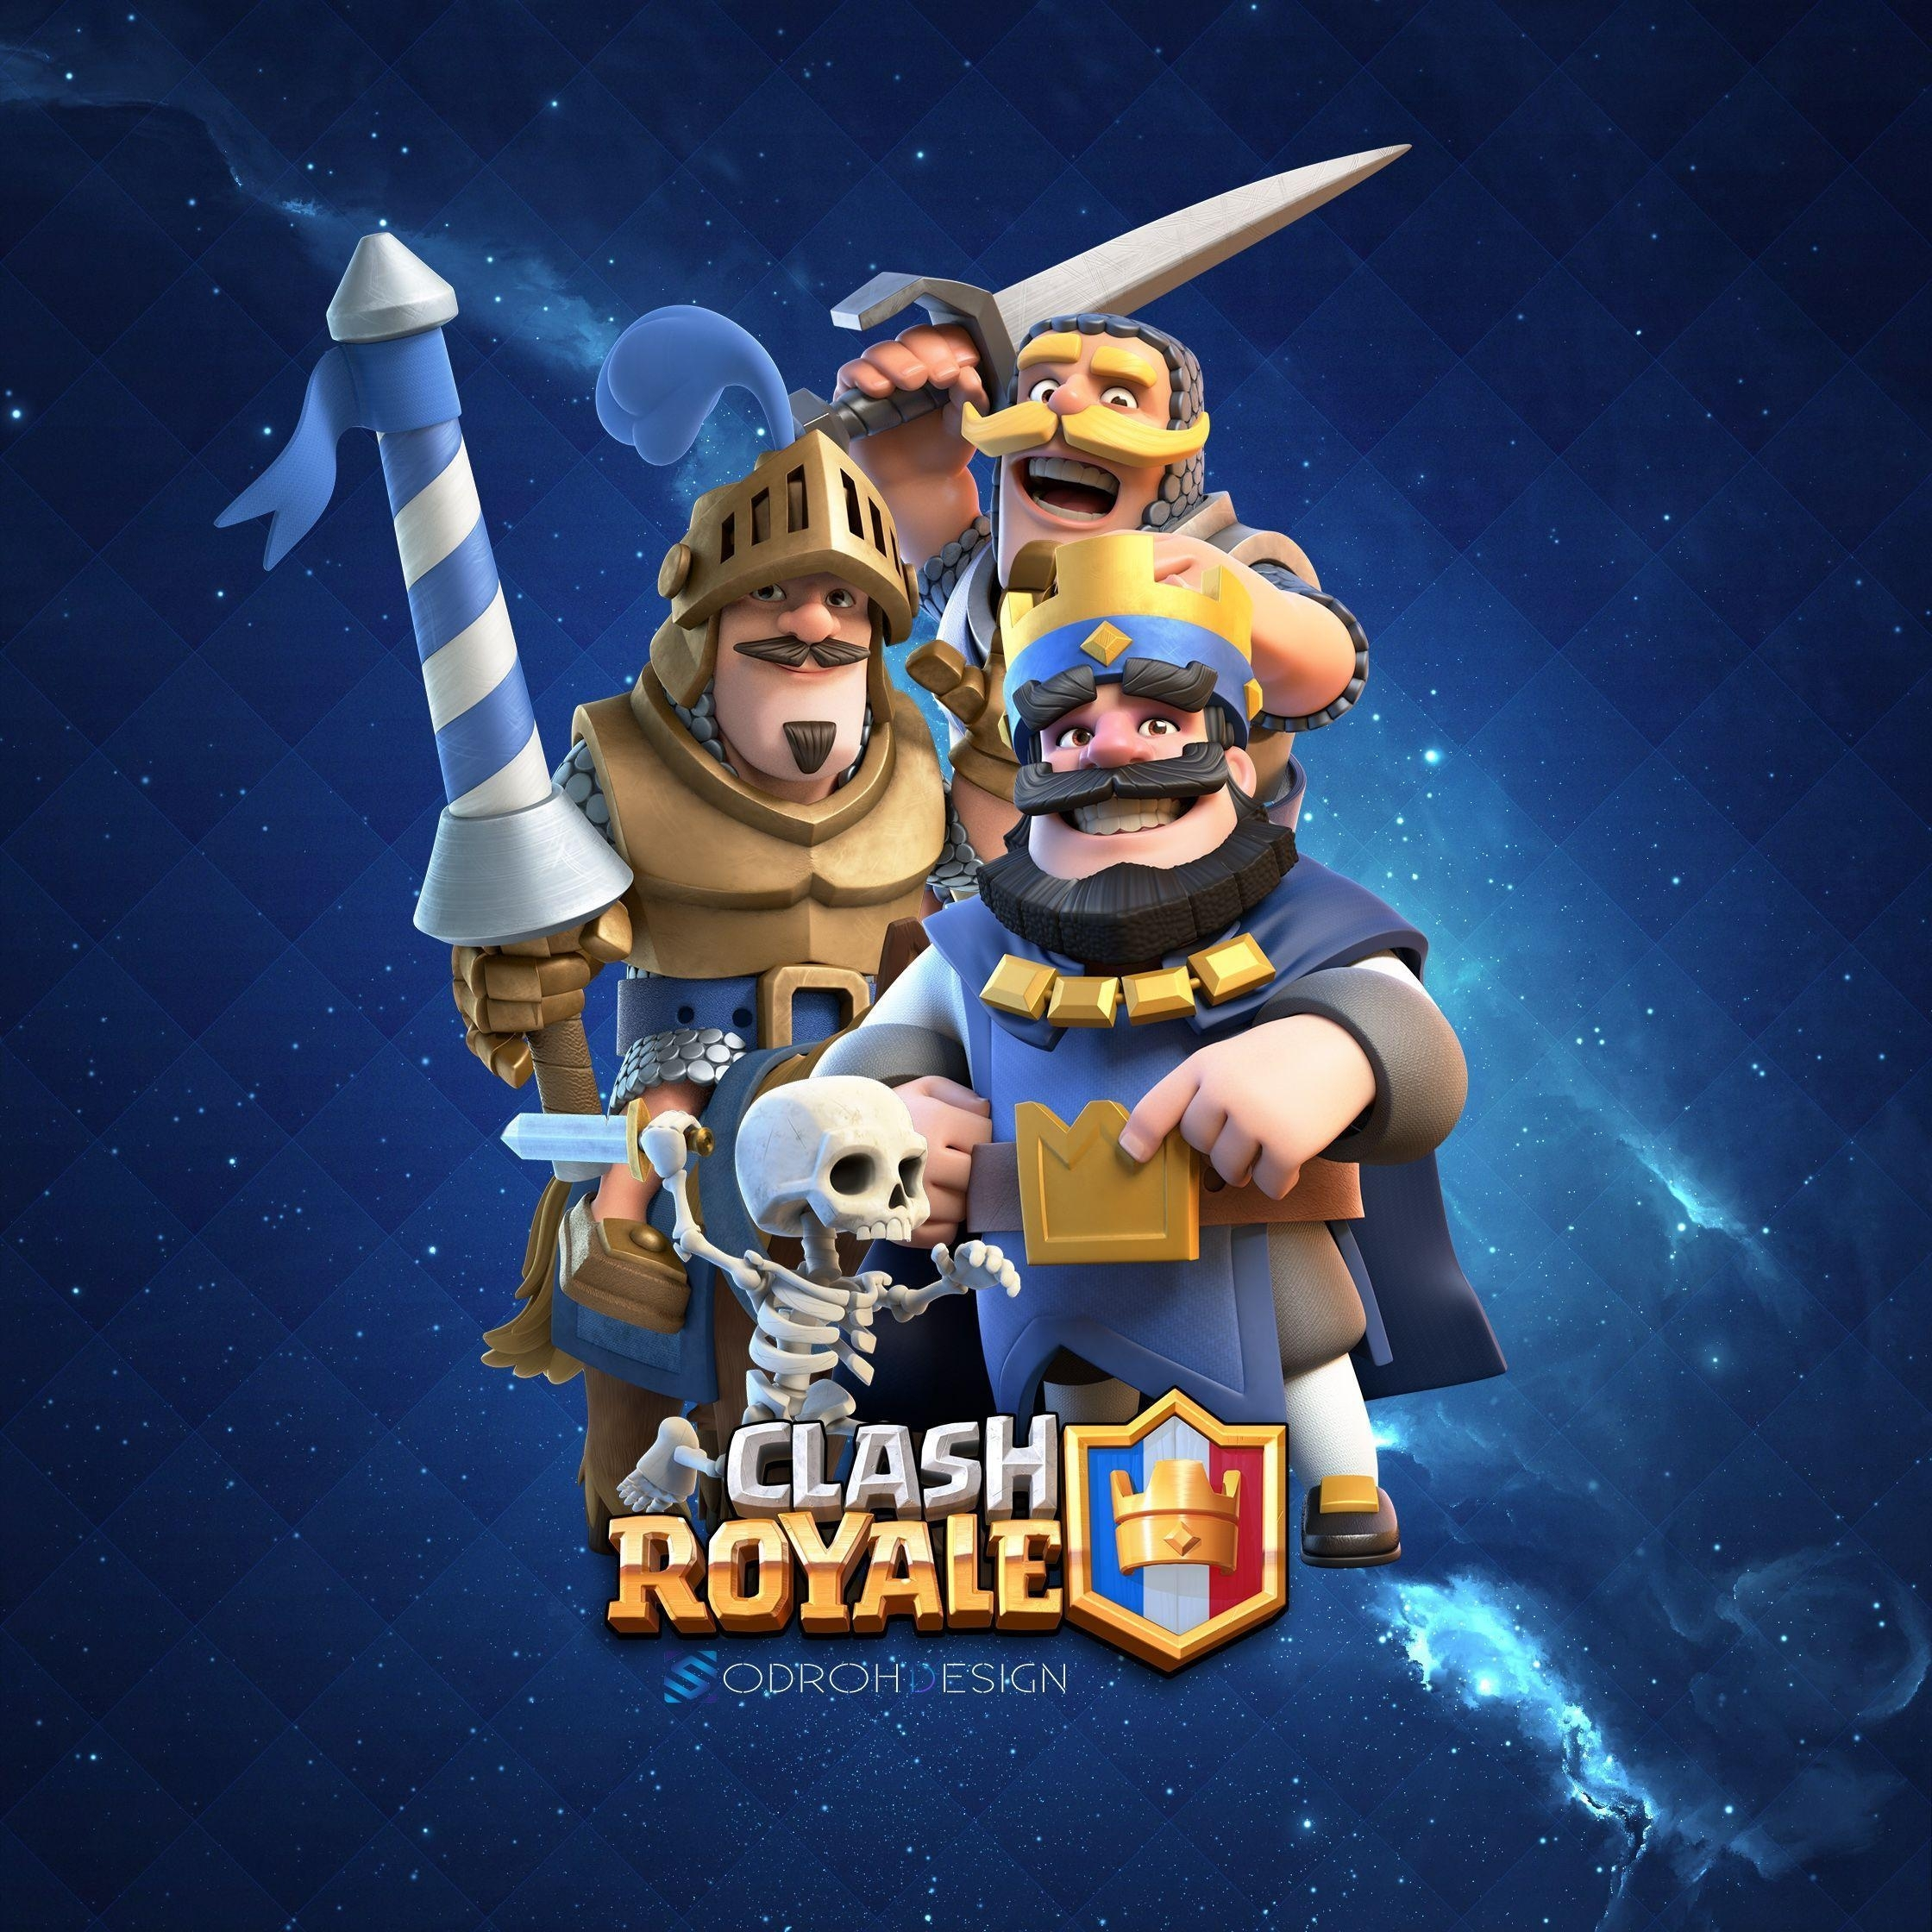 clash royale wallpapers - wallpaper cave